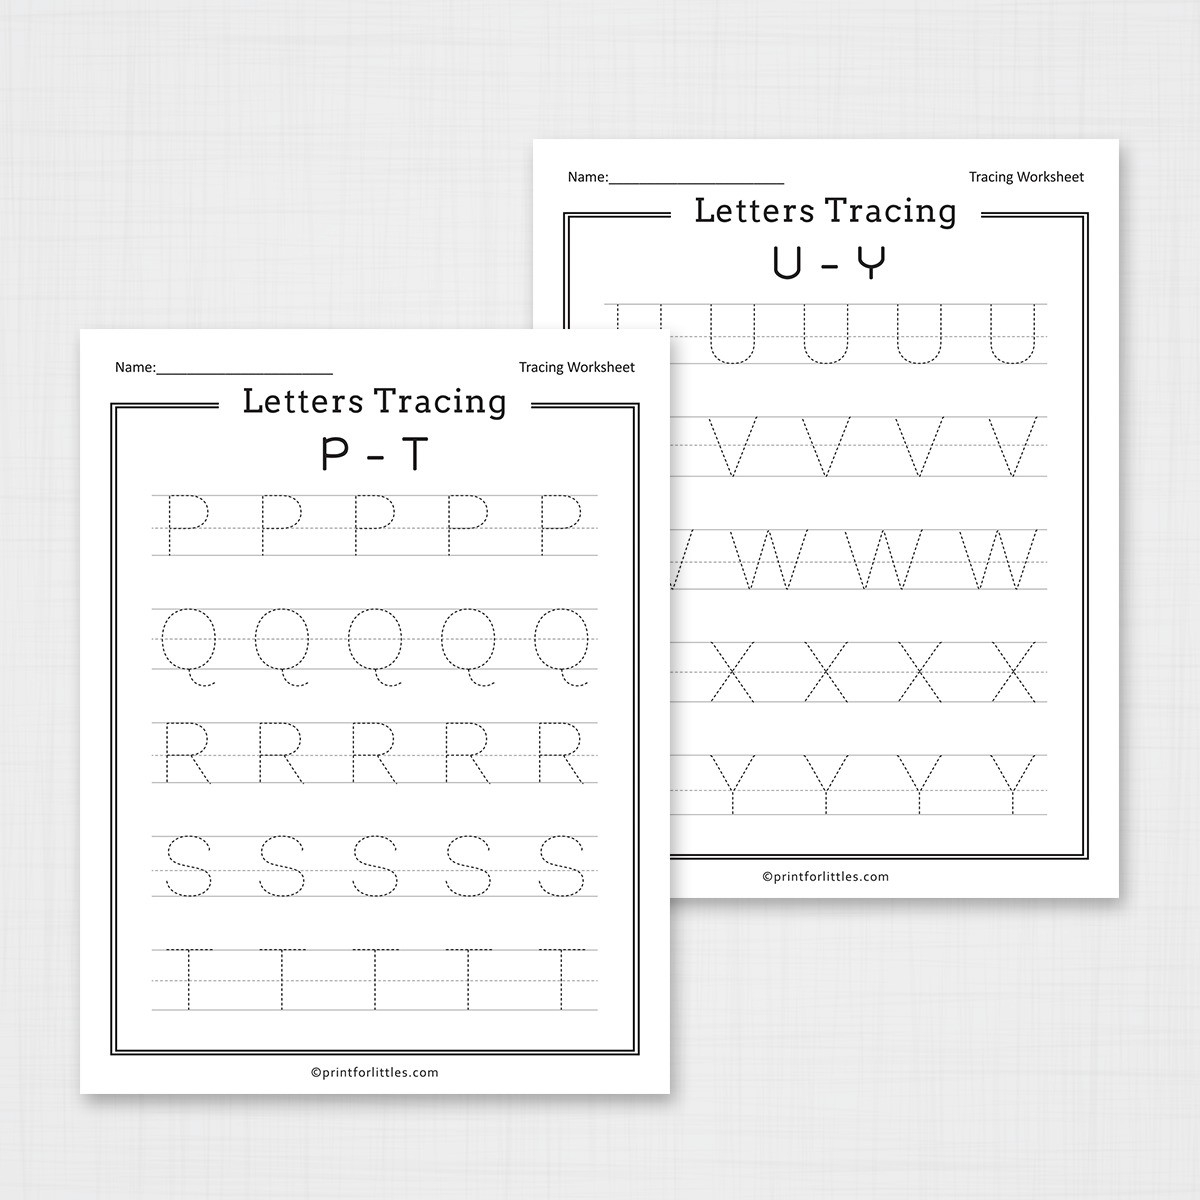 Free Printable Letters Tracing A-Z Worksheets throughout Letter Tracing Resources